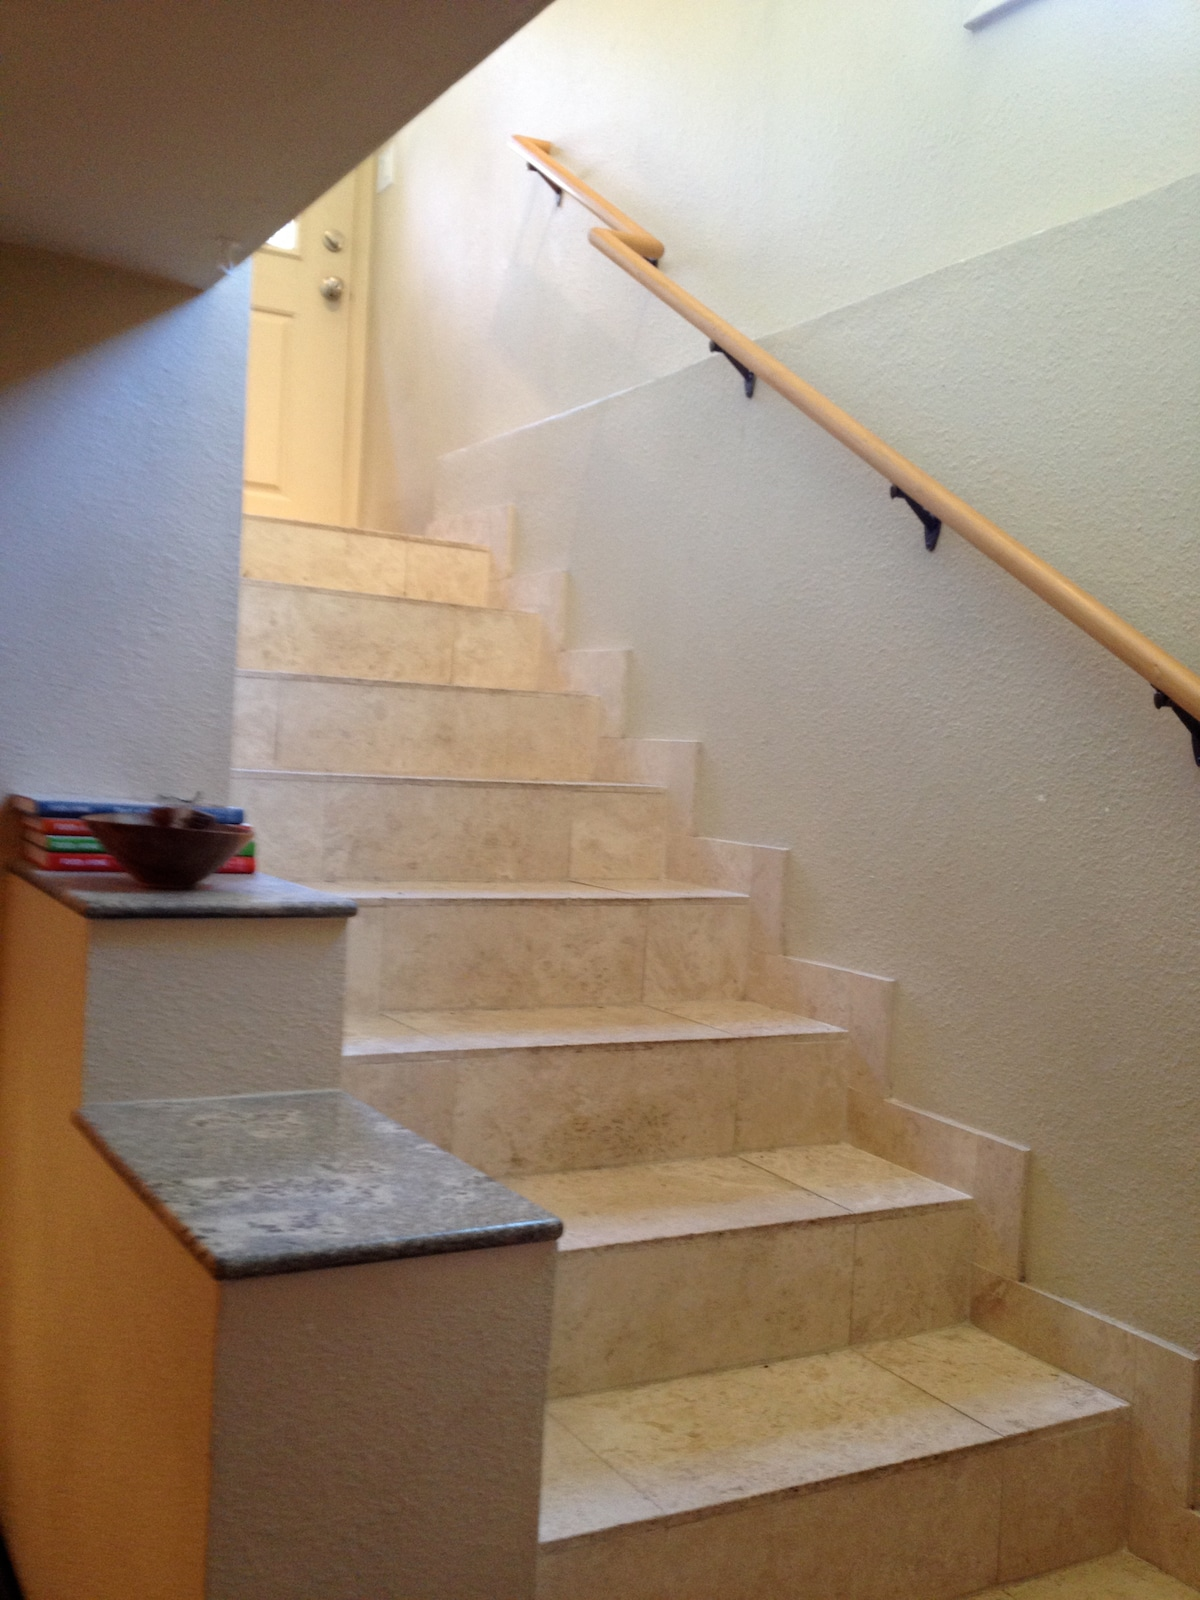 marble stairs and floors throughout